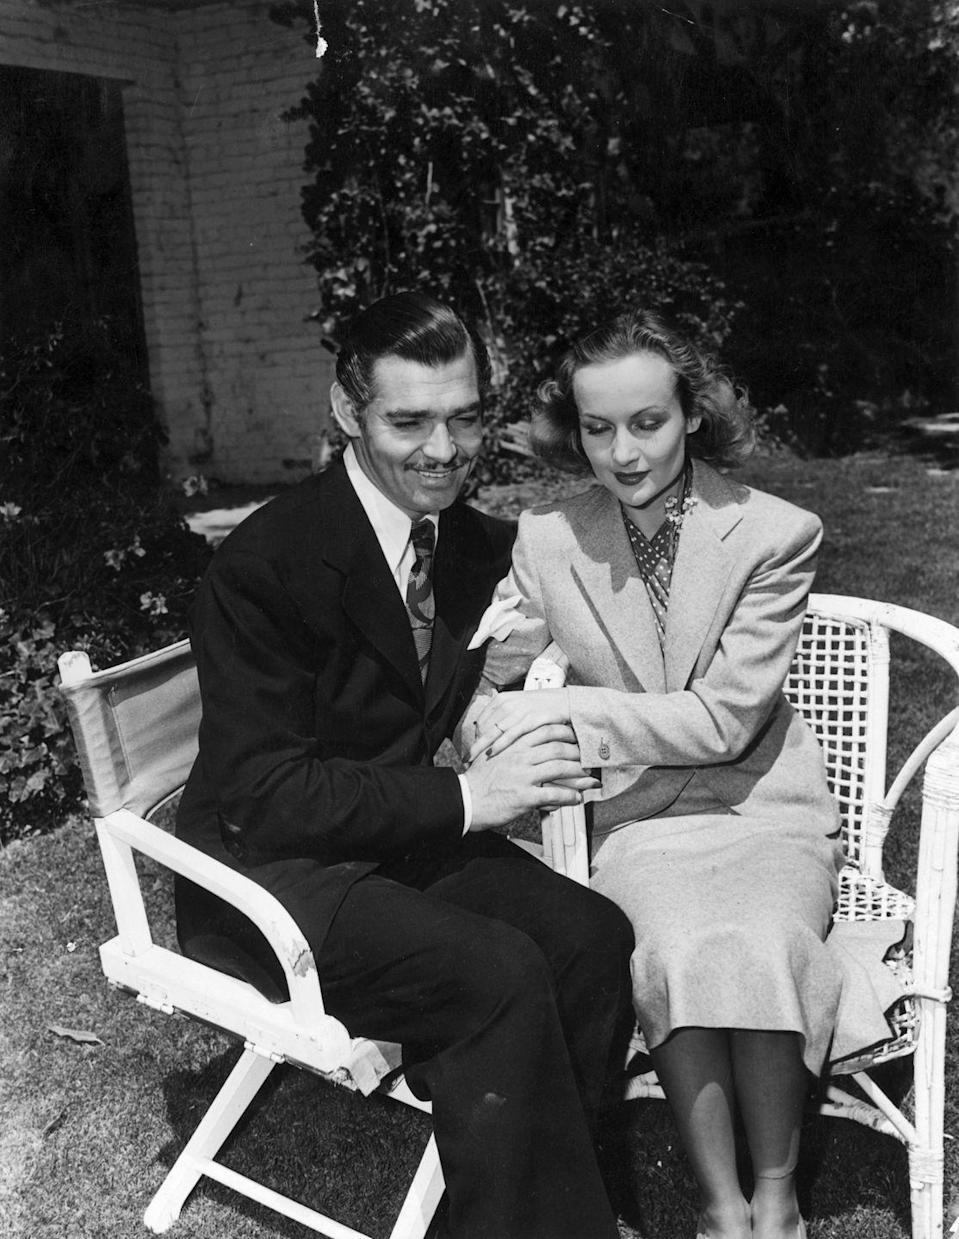 """<p>Screen legend Clark Gable and actress Carole Lombard pose for a photo shortly after their marriage ceremony in 1939. Gable wed Lombard during a production break on <em> Gone with the Wind.</em> The two were married for three years, until her untimely death in a plane accident in 1942. He went on to say """"I do"""" two more times – and was married to Kay Williams at the time of his death in 1960.</p>"""